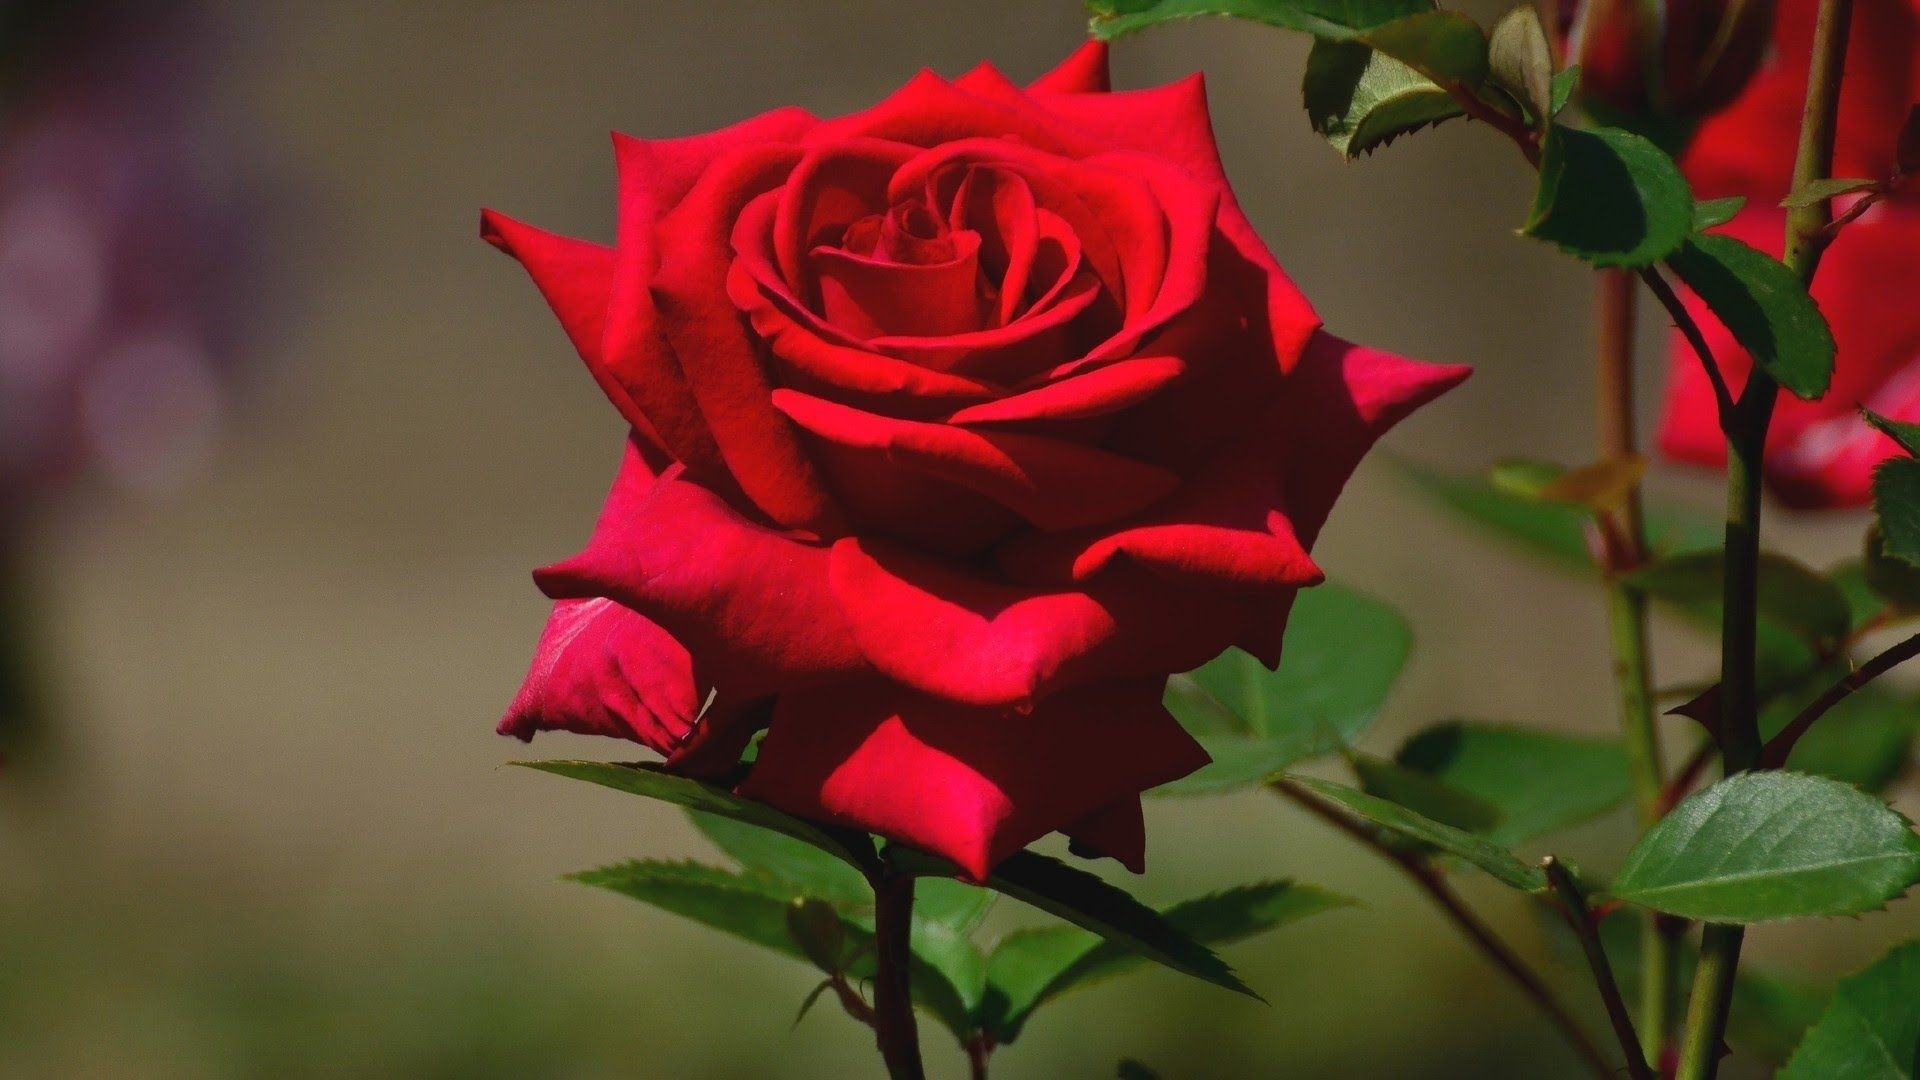 Red Rose Full HD Wallpaper